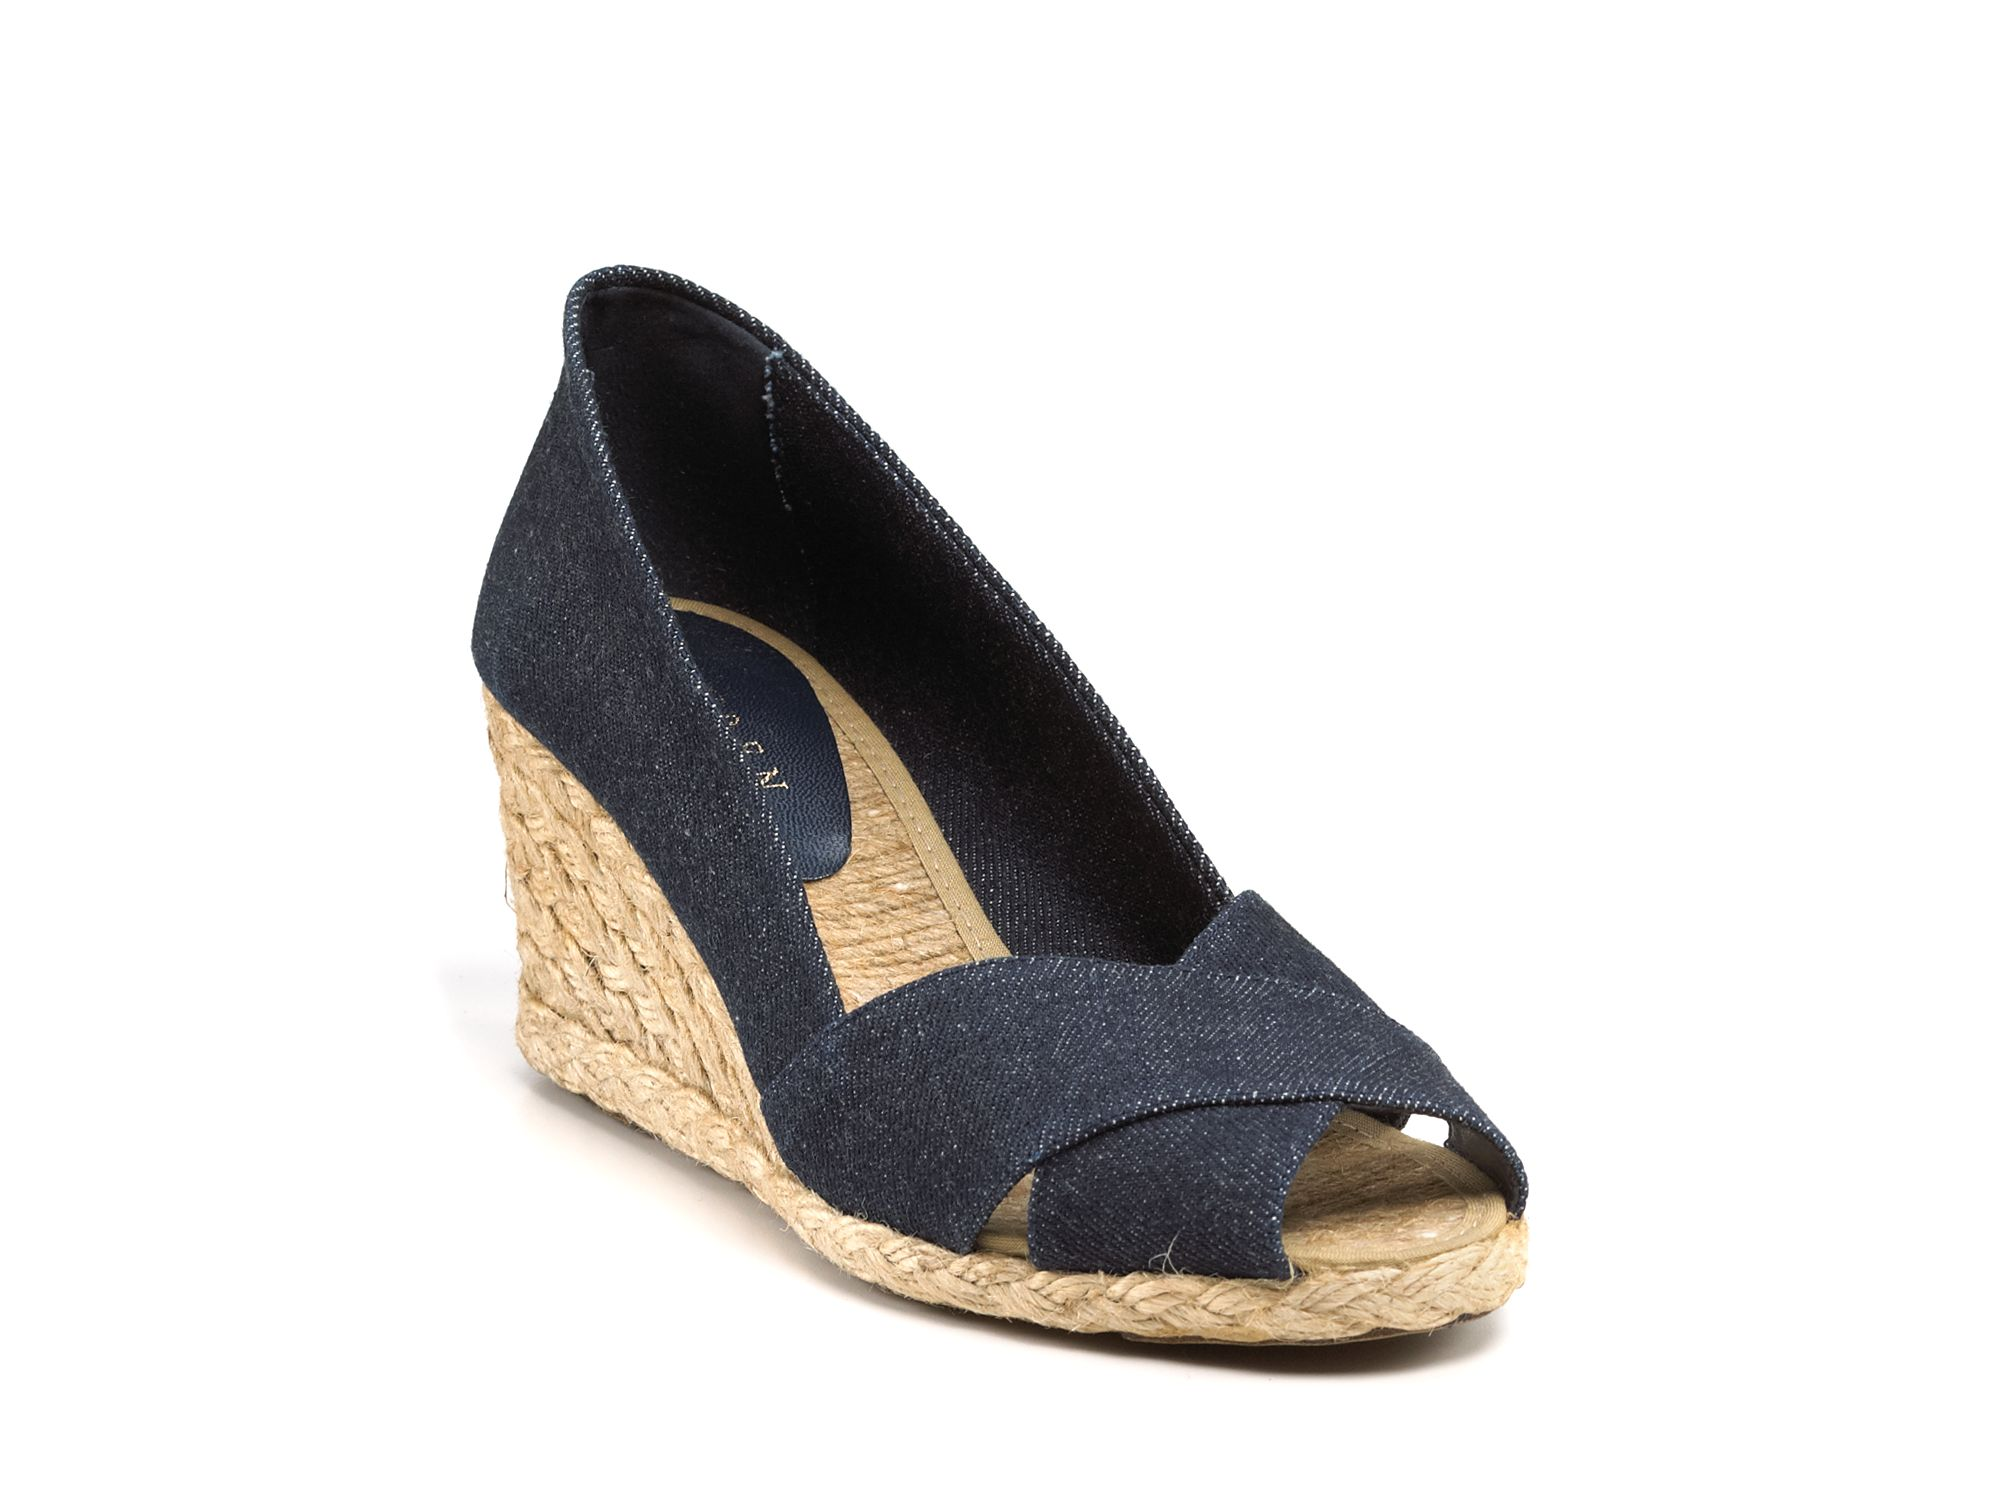 lauren by ralph lauren cecilia espadrille wedge sandals in blue dark wash denim lyst. Black Bedroom Furniture Sets. Home Design Ideas